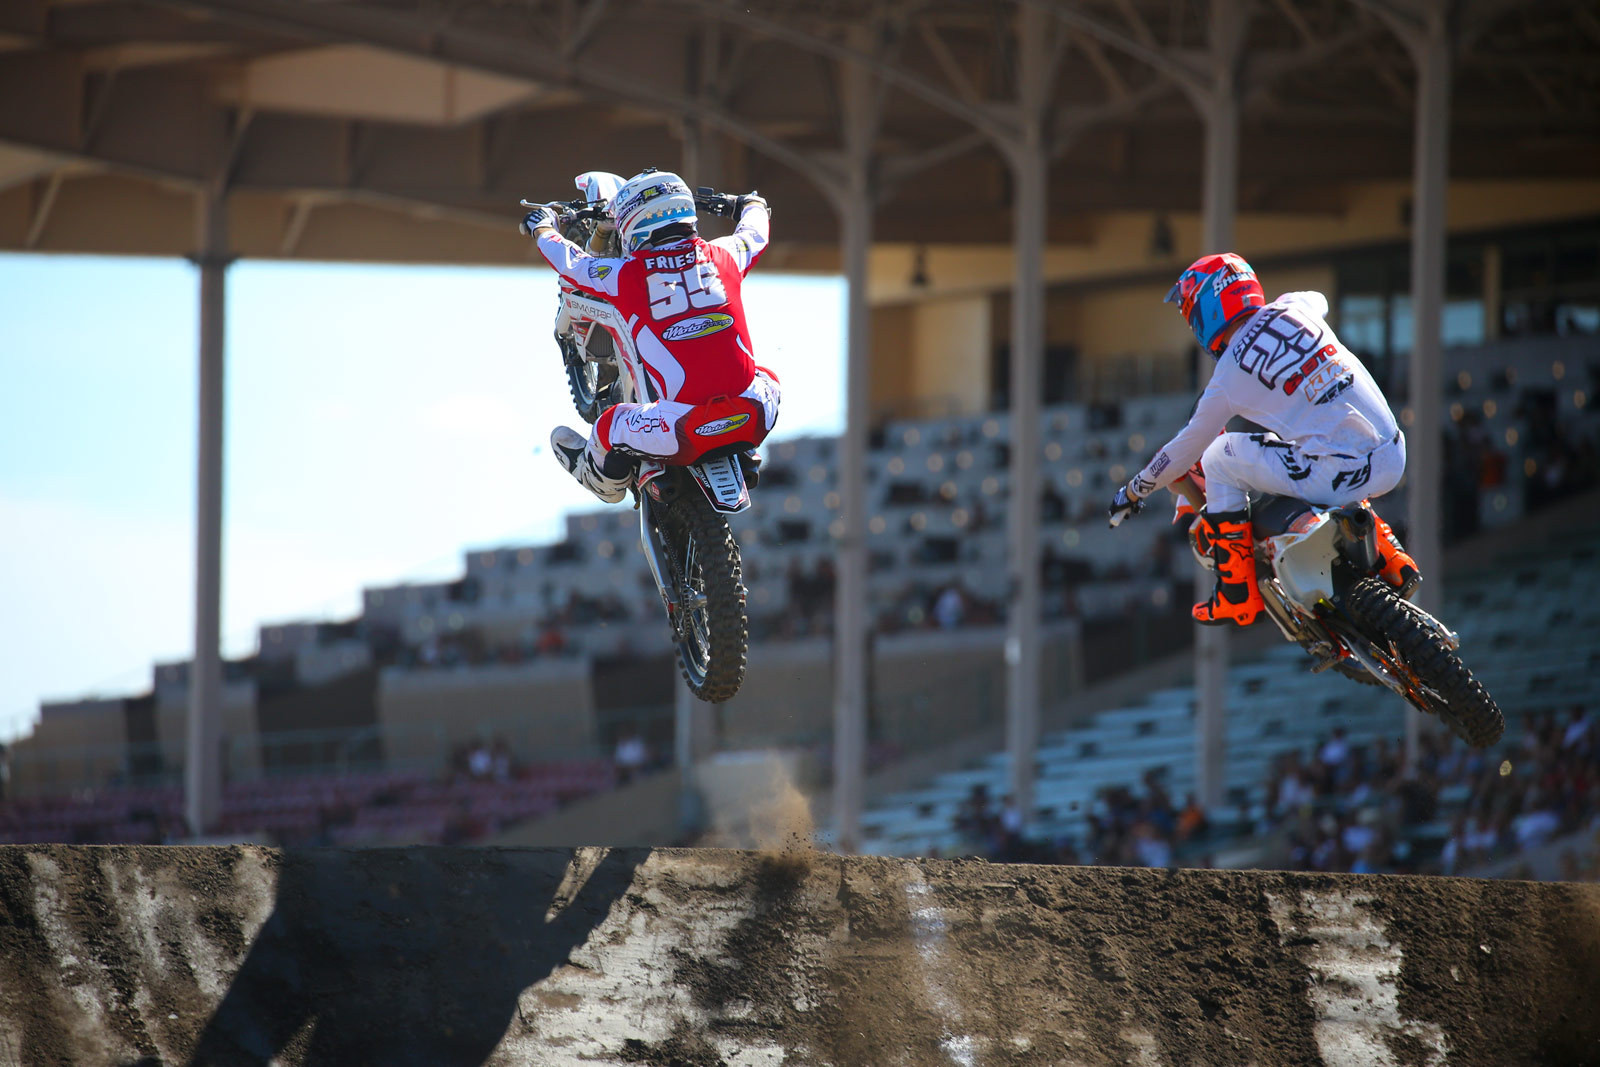 Vince Friese and Andrew Short - Photo Blast: Red Bull Straight Rhythm - Motocross Pictures - Vital MX